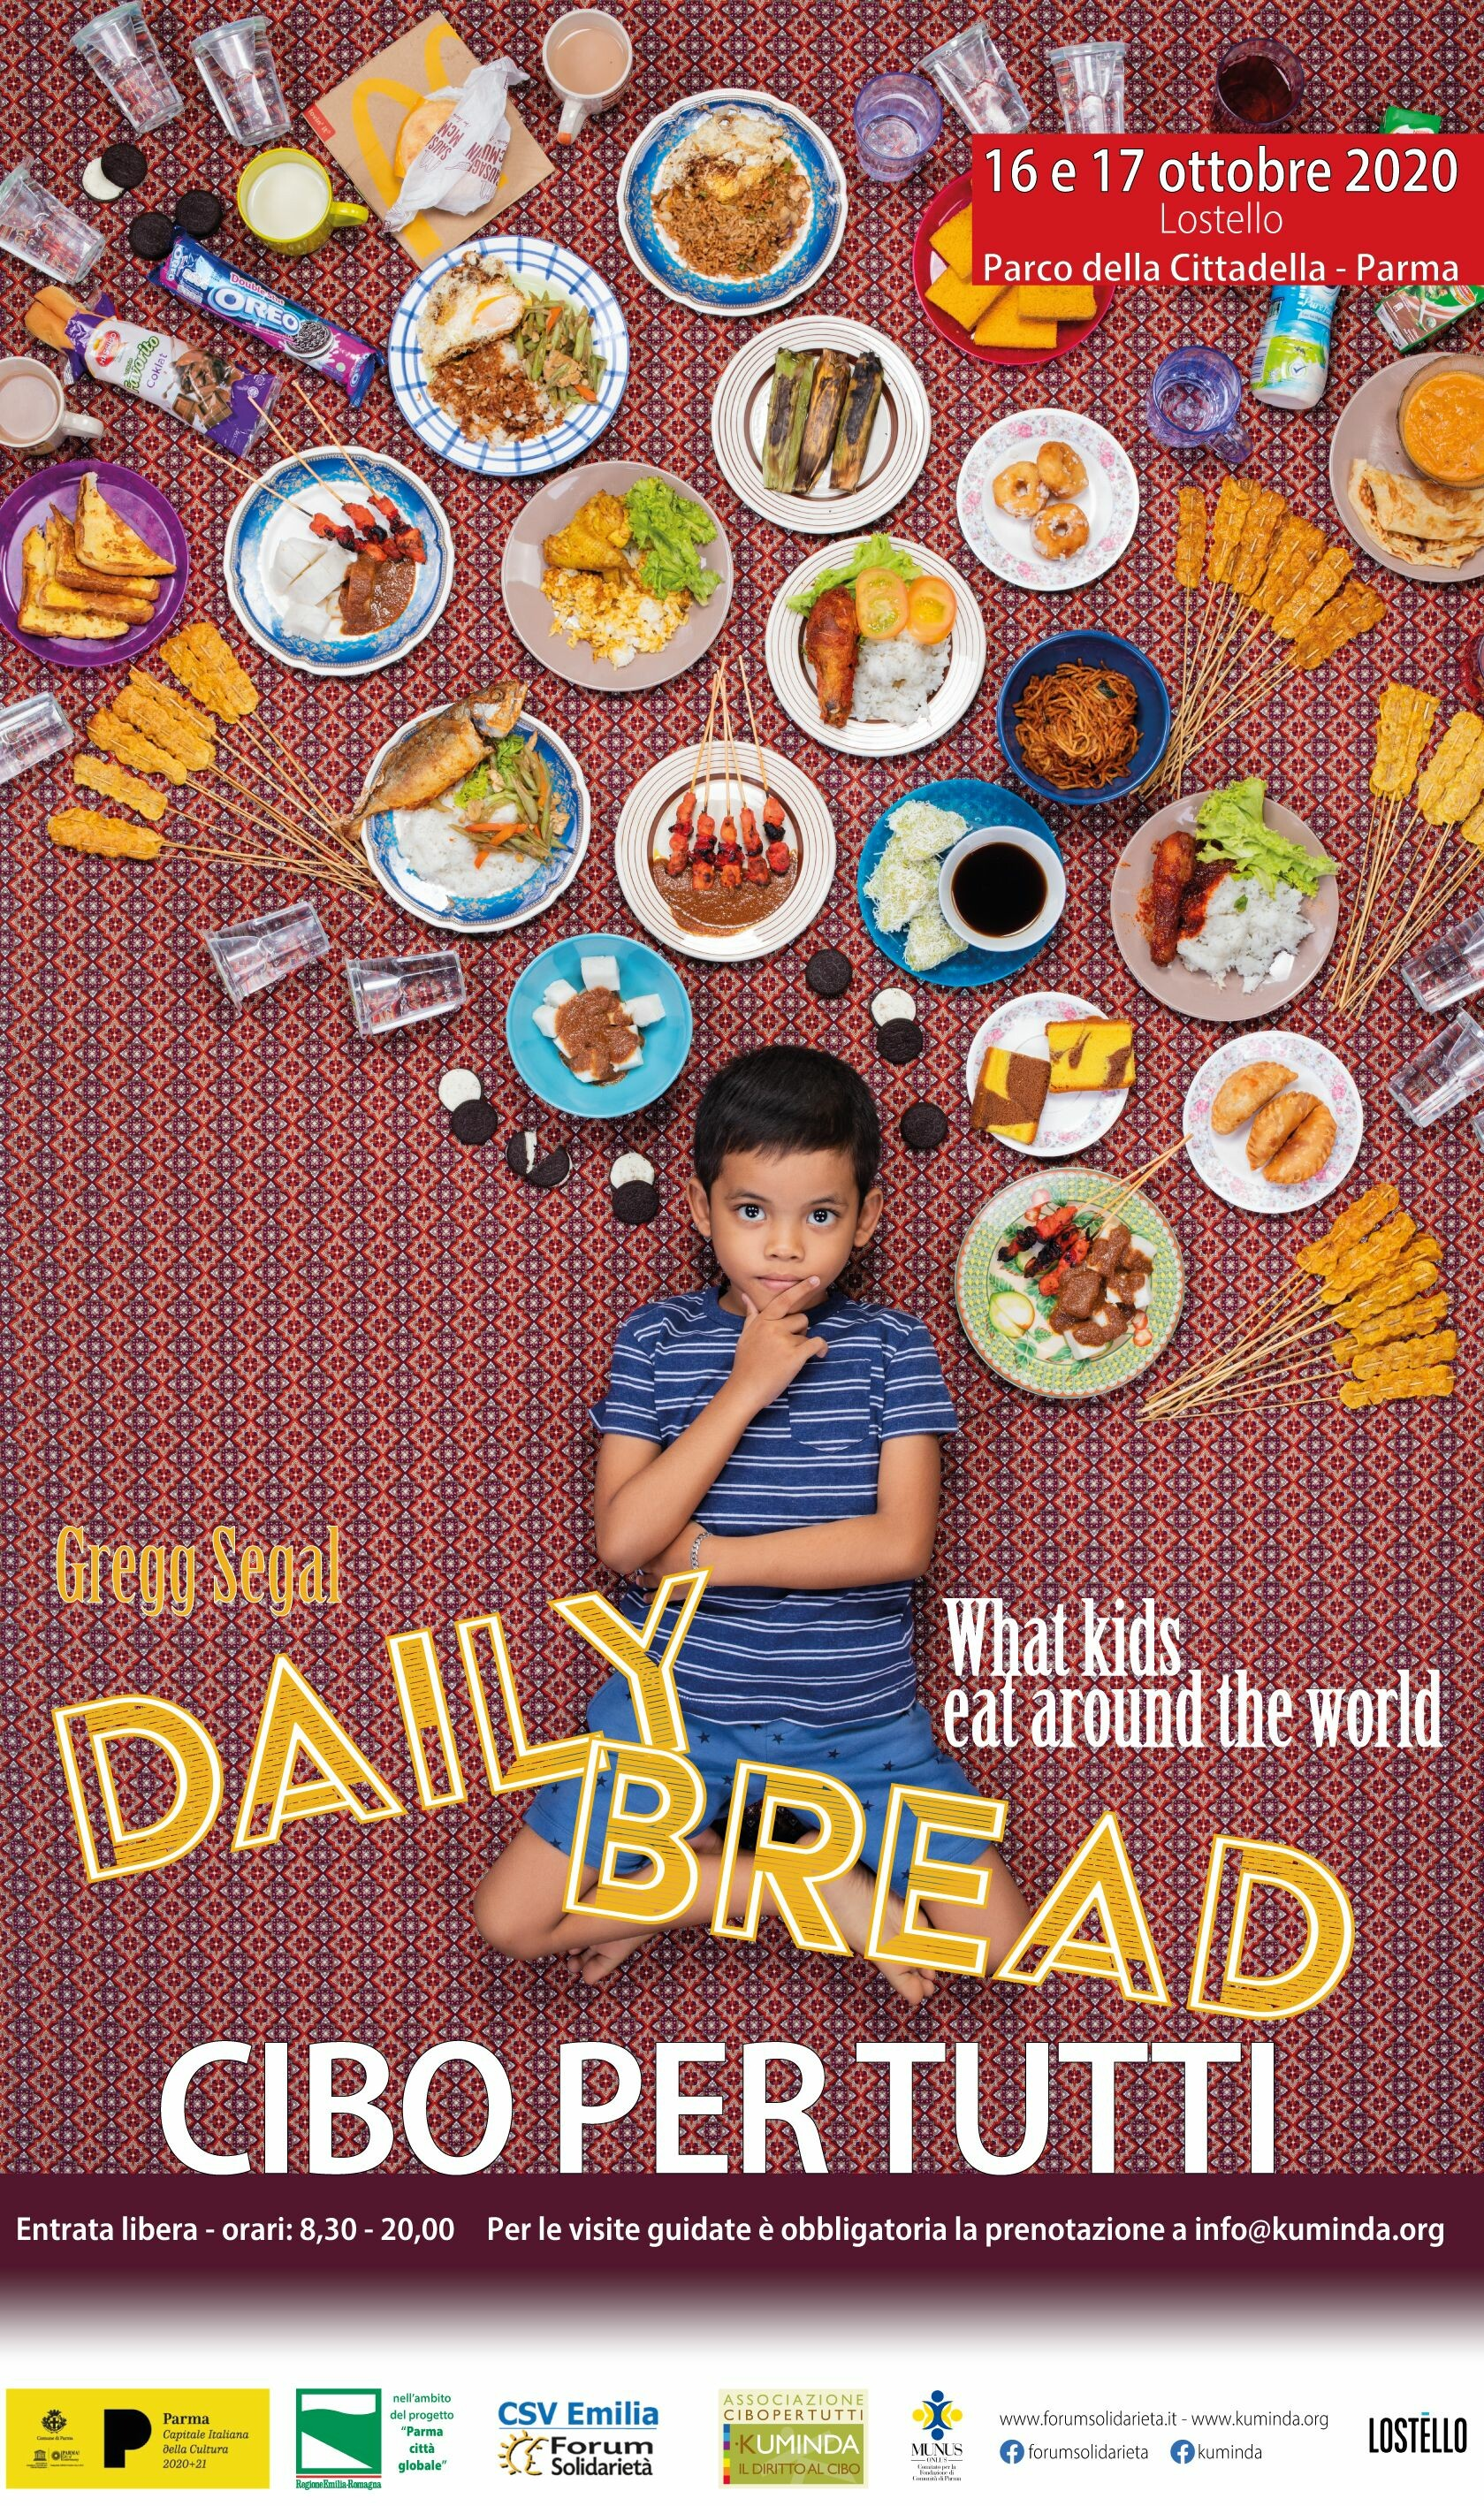 Daily Bread – What kids eat around the world in mostra  a Lostello,